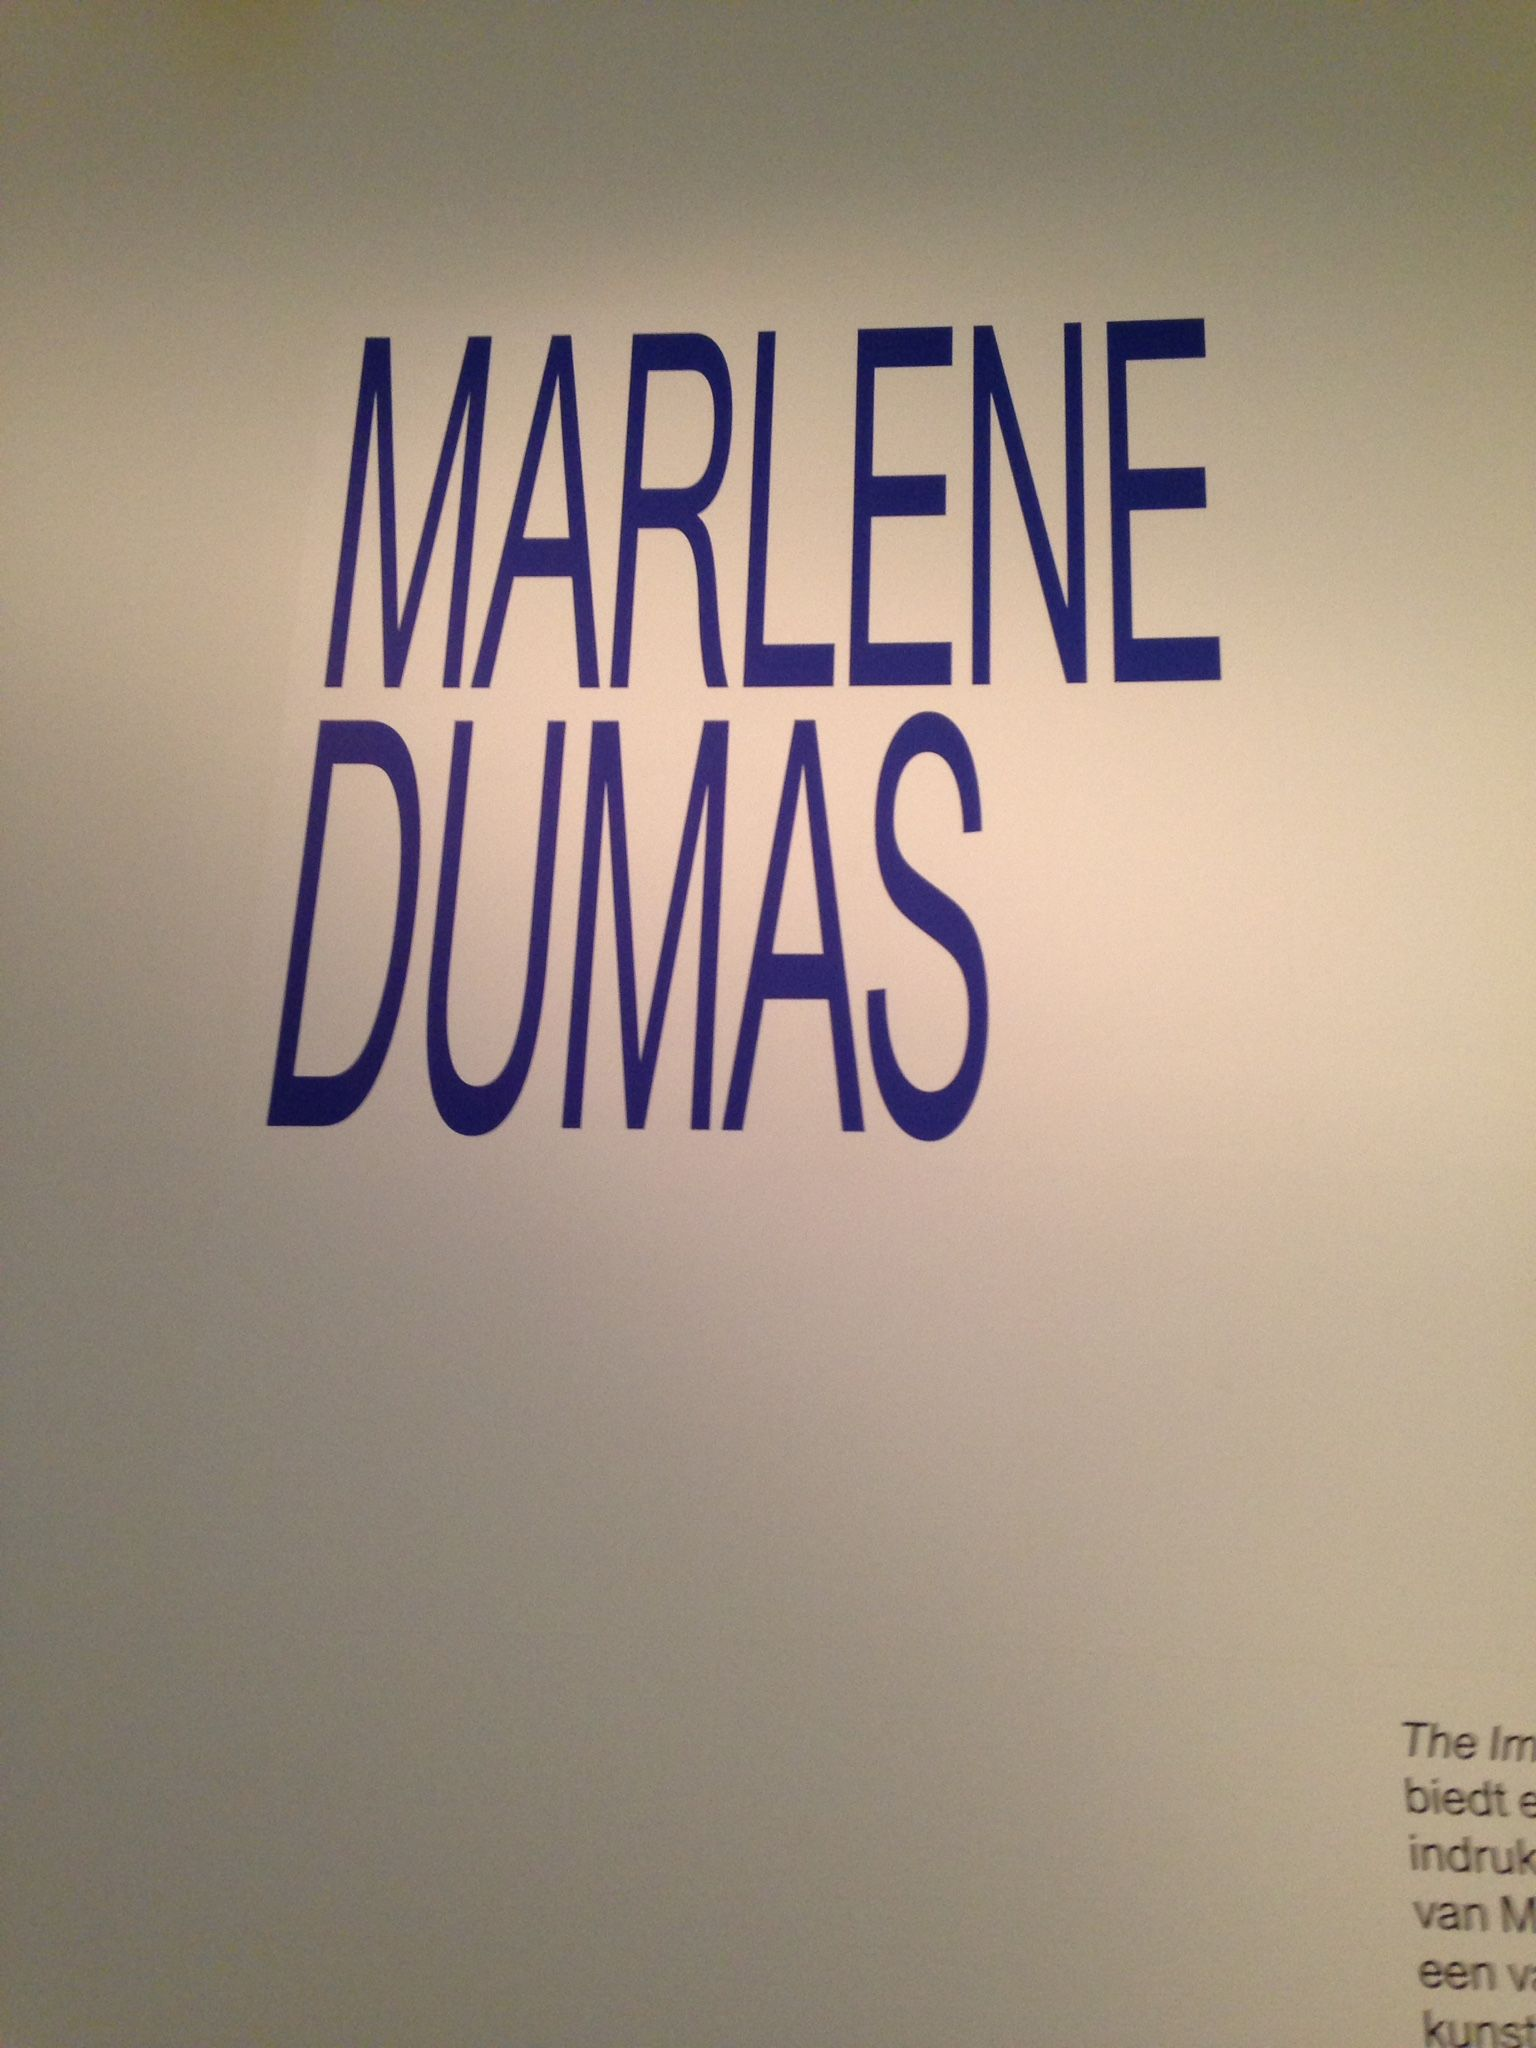 Marlene Dumas: The Image as Burden 6 sep 2014 - 4 jan 2015